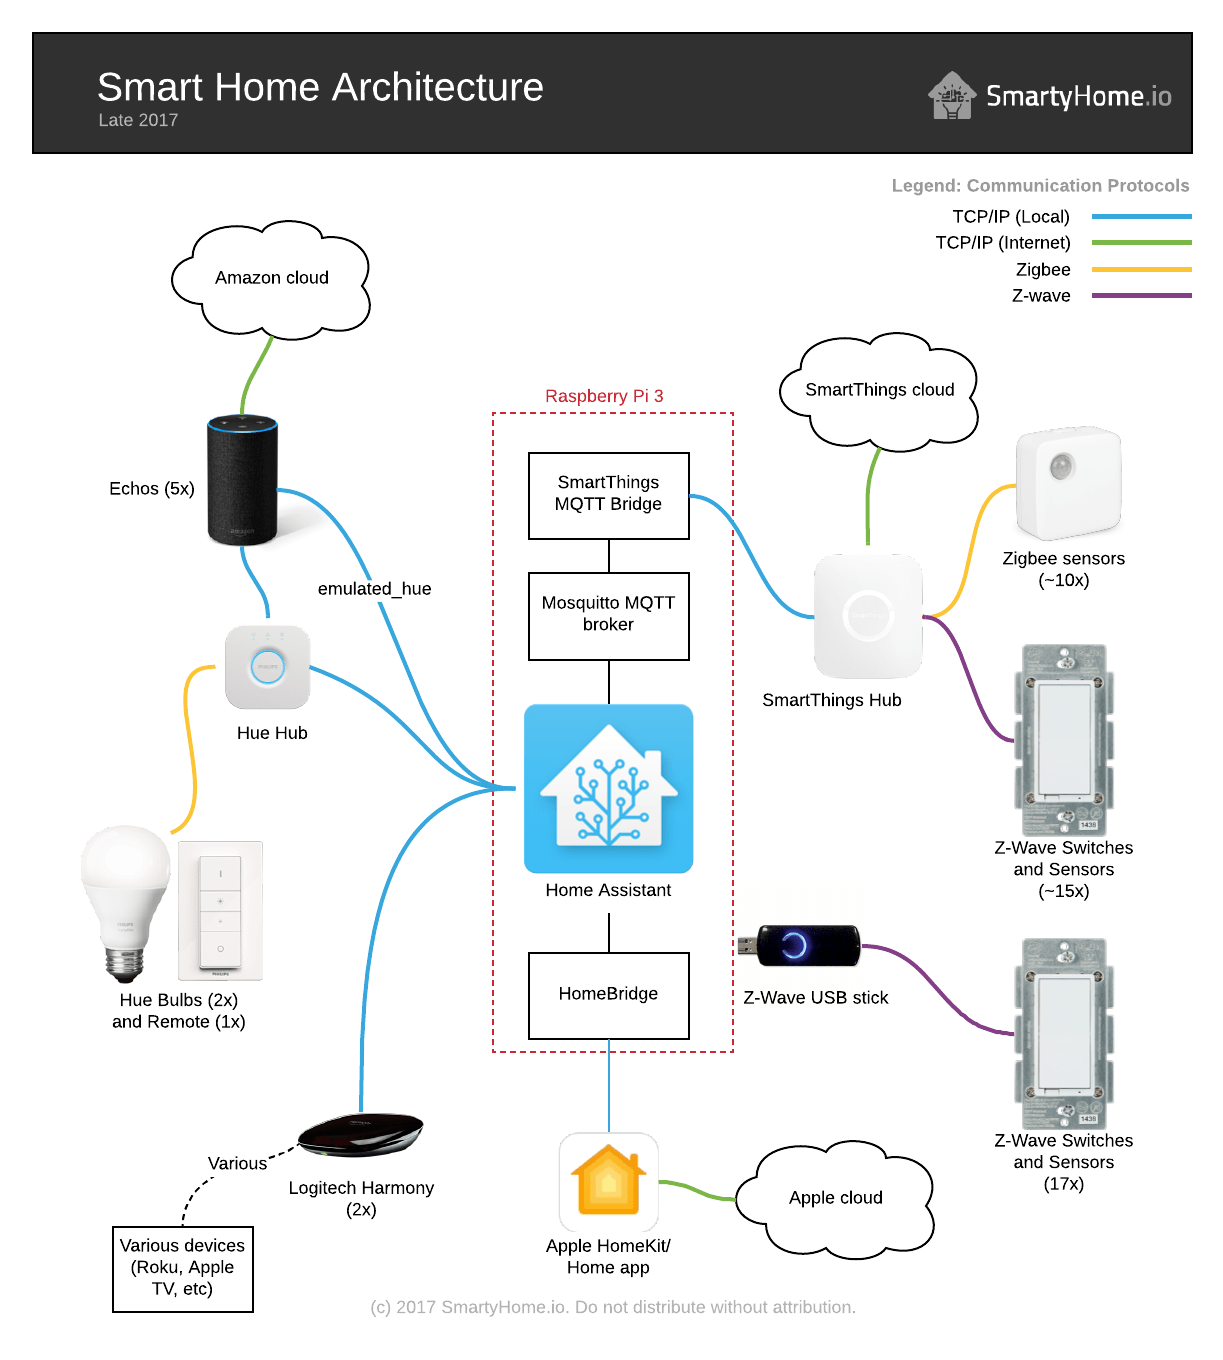 State of my smart home late 2017 smartyhome my home automation architecture as of late 2017 ccuart